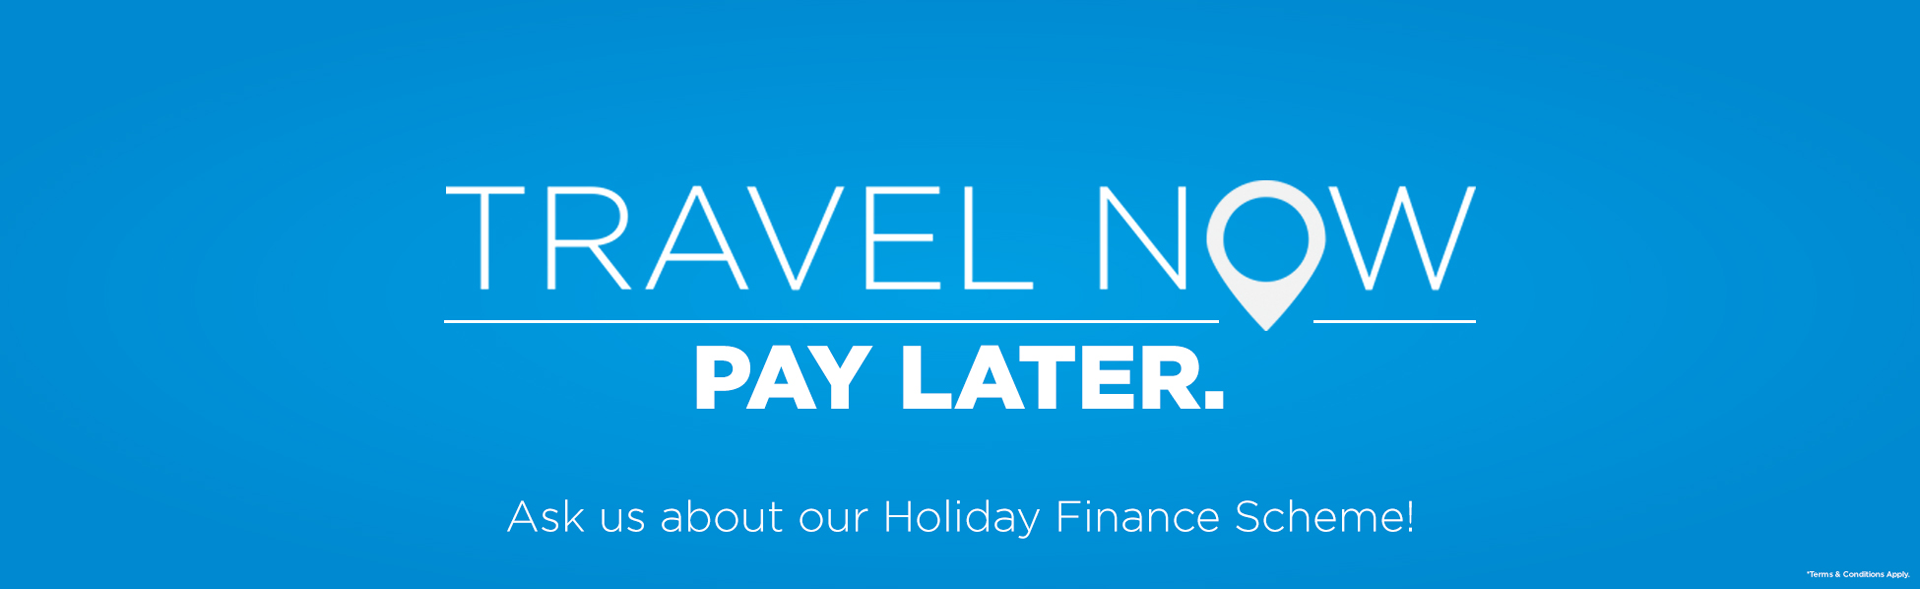 Holidays book now pay later no deposit for Book now pay later vacation